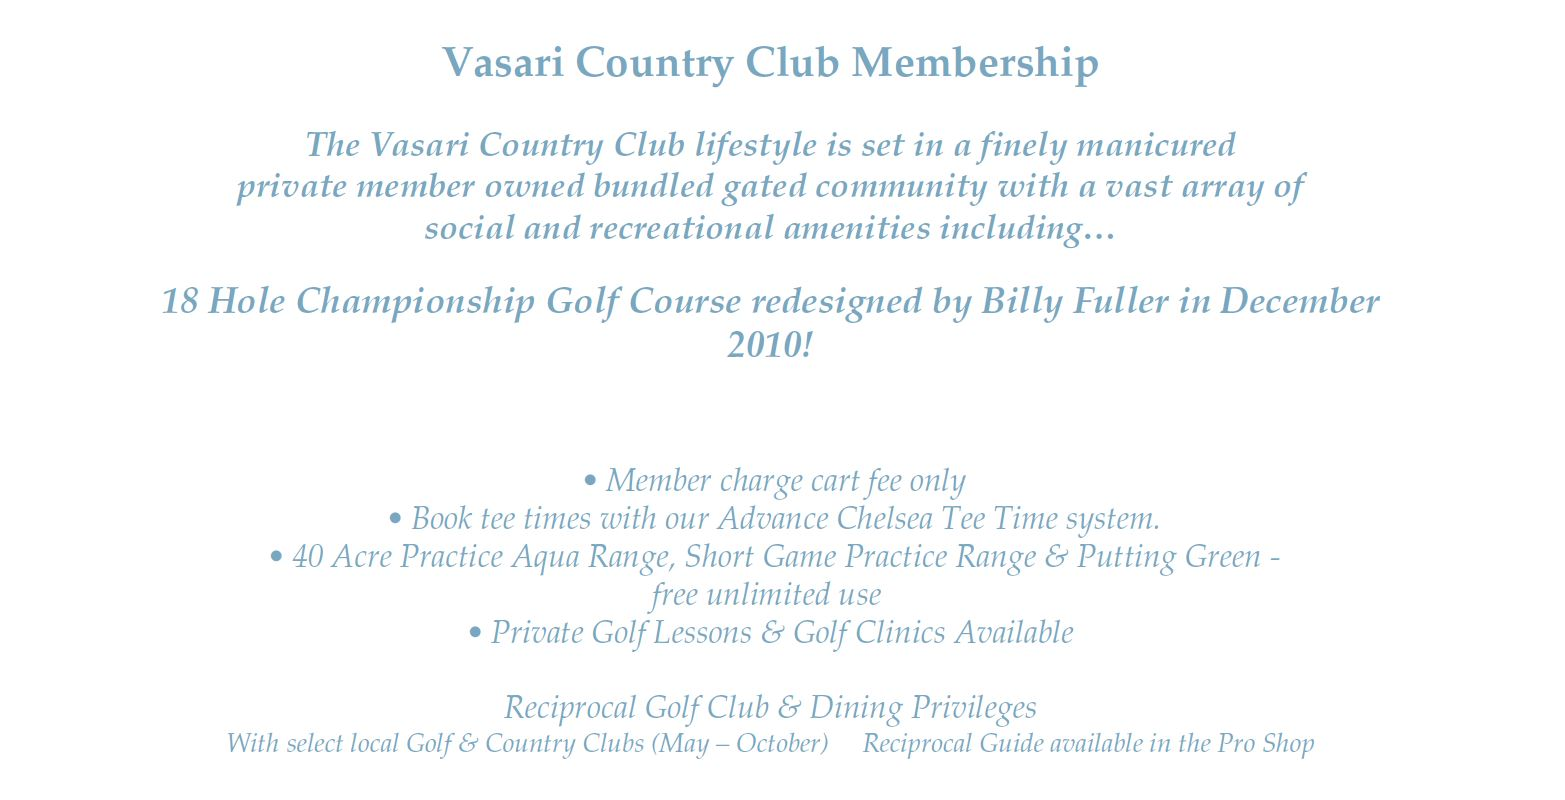 Membership information for Vasari In Naples, Florida.